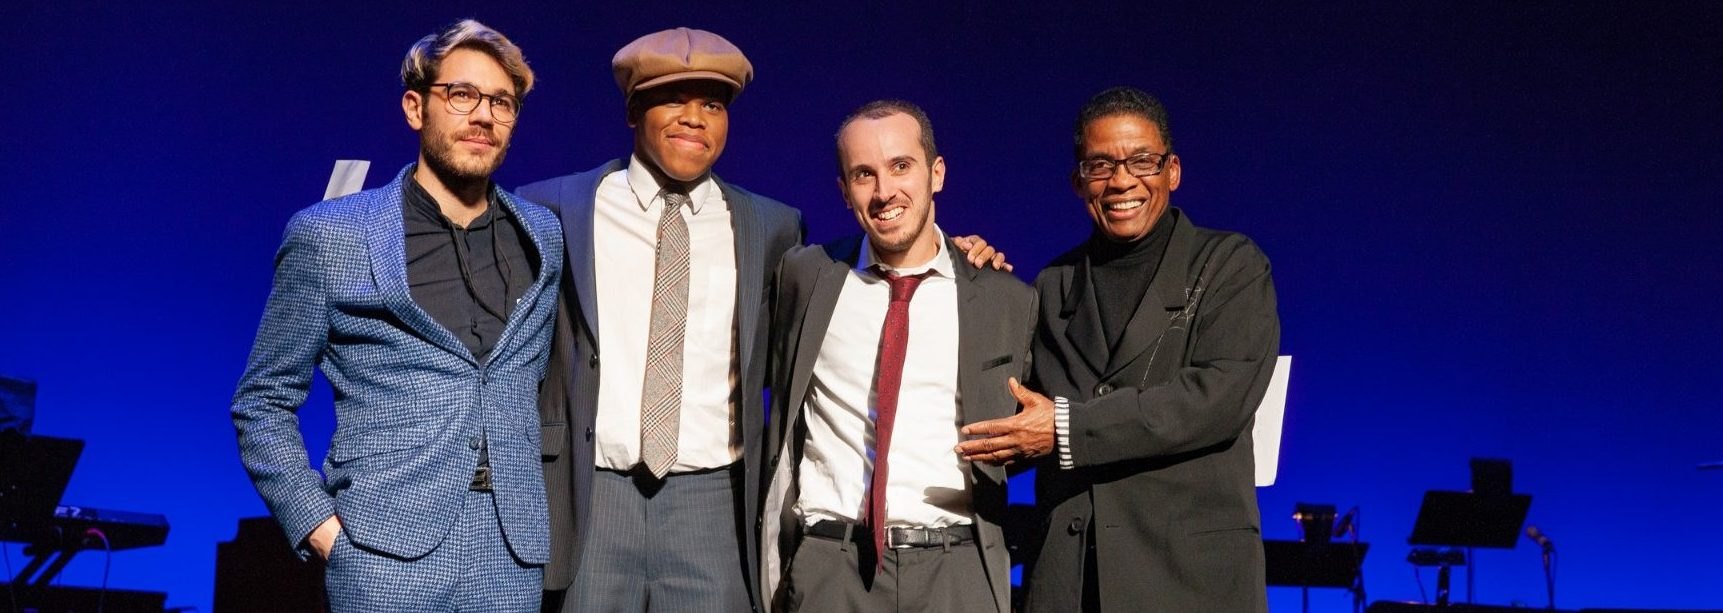 2018 Competition Finalists (from left) Maxime Sanchez, Isaiah Thompson and Tom Oren with Institute Chairman Herbie Hancock at the John F. Kennedy Center for the Performing Arts, December 3, 2018.